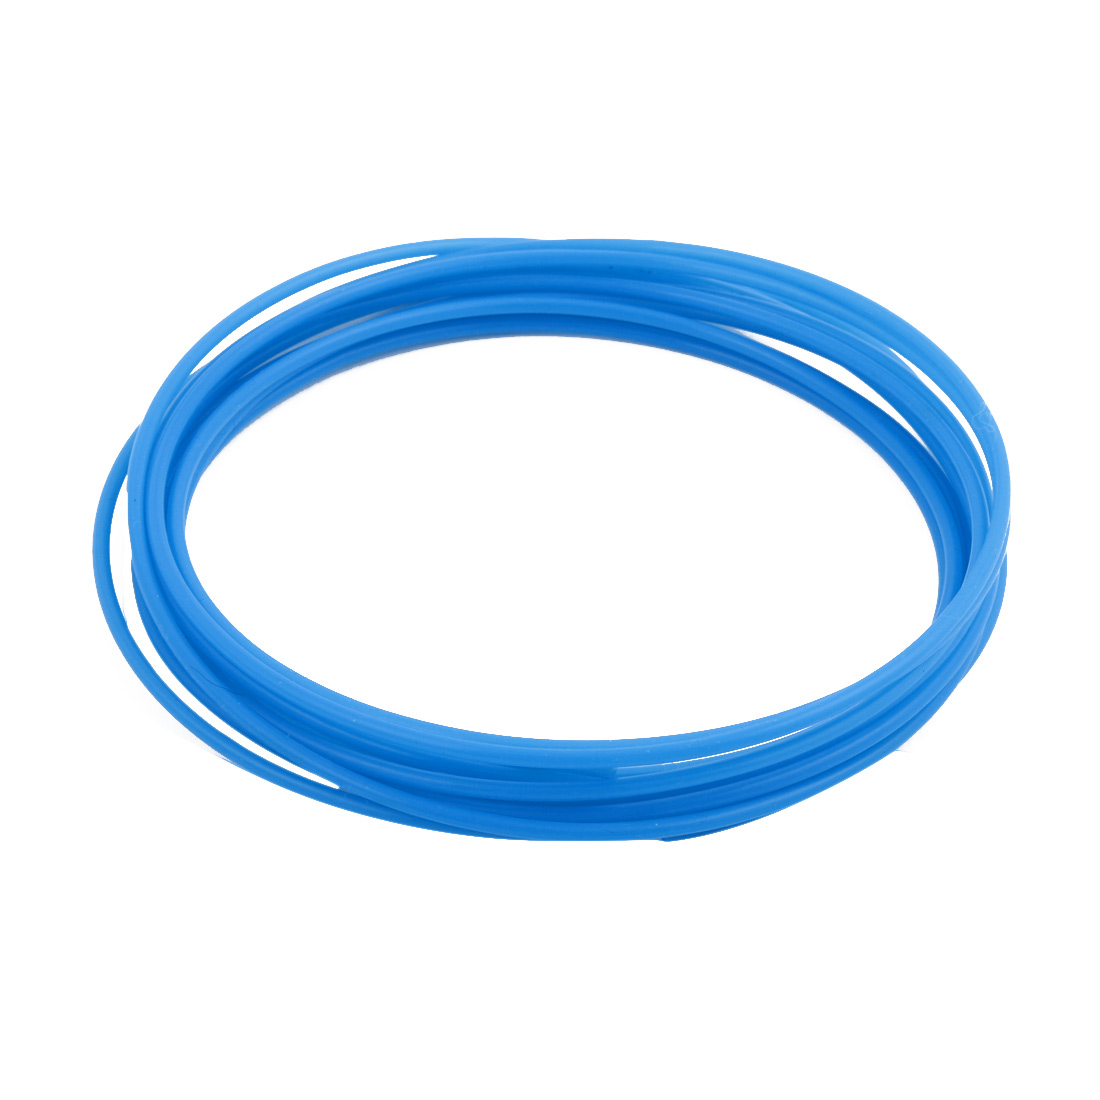 2.41mmx2.81mm PTFE Resistant High Temperature Blue Tubing 5 Meters 16.4Ft